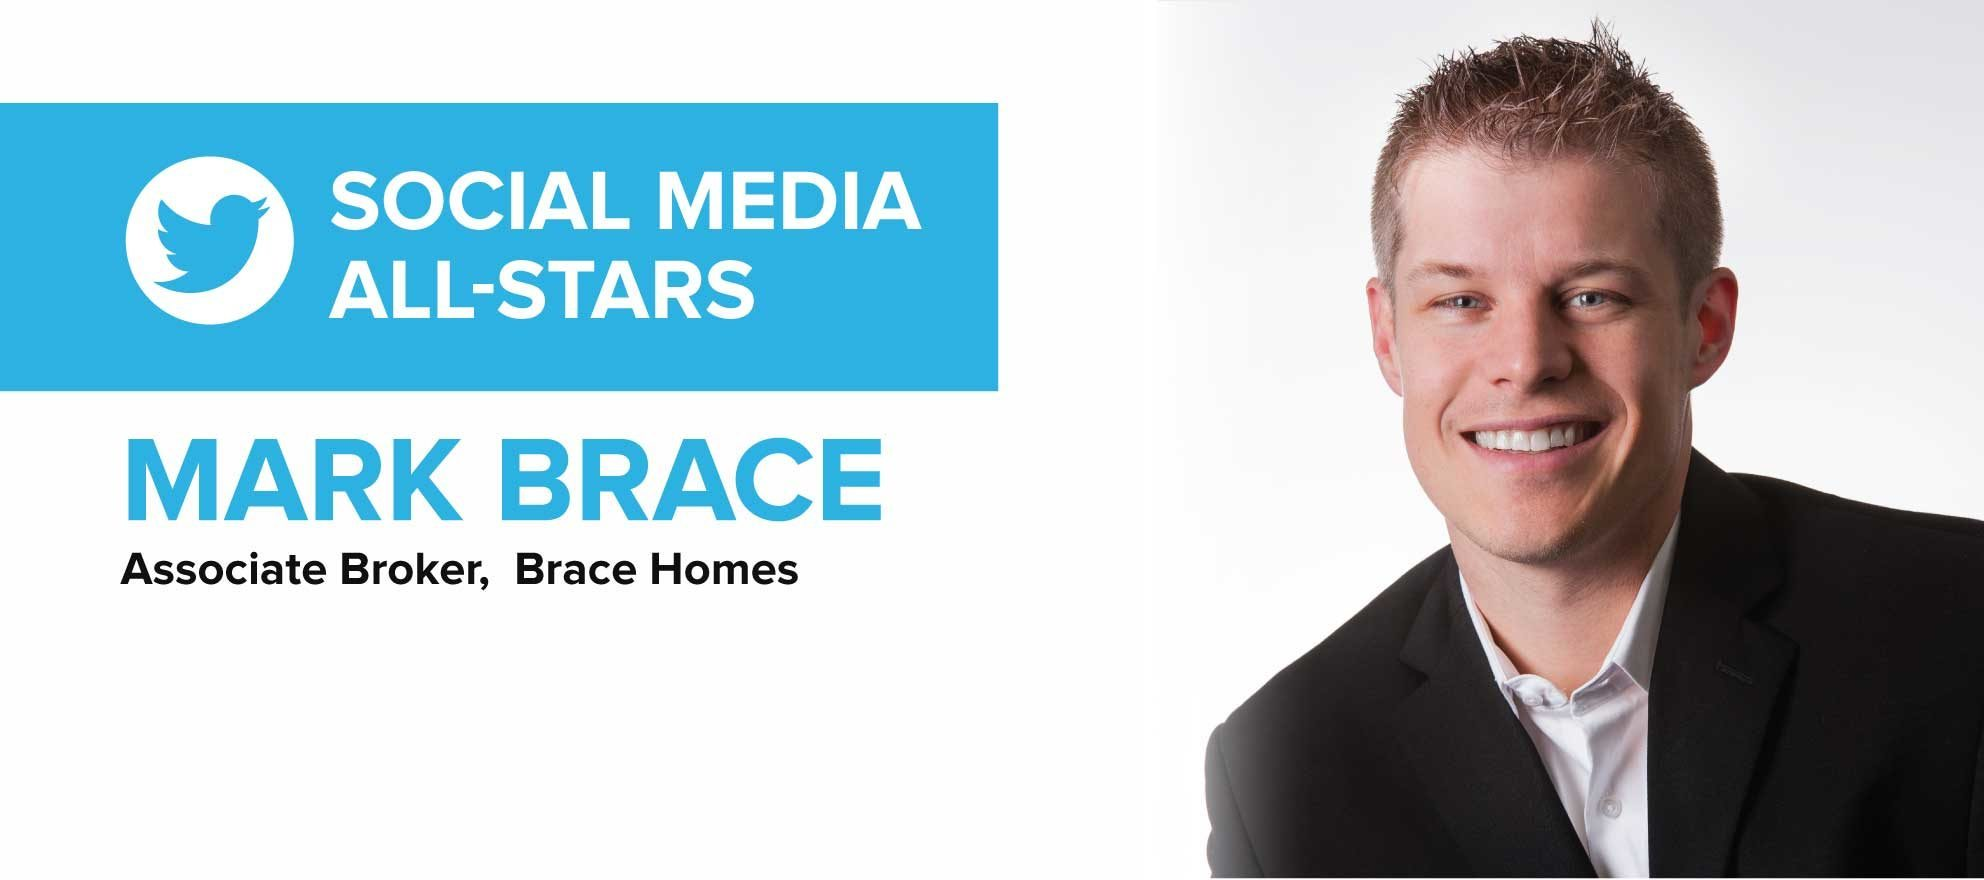 Mark Brace: 'The Facebook promotions tool has gotten me the most results'